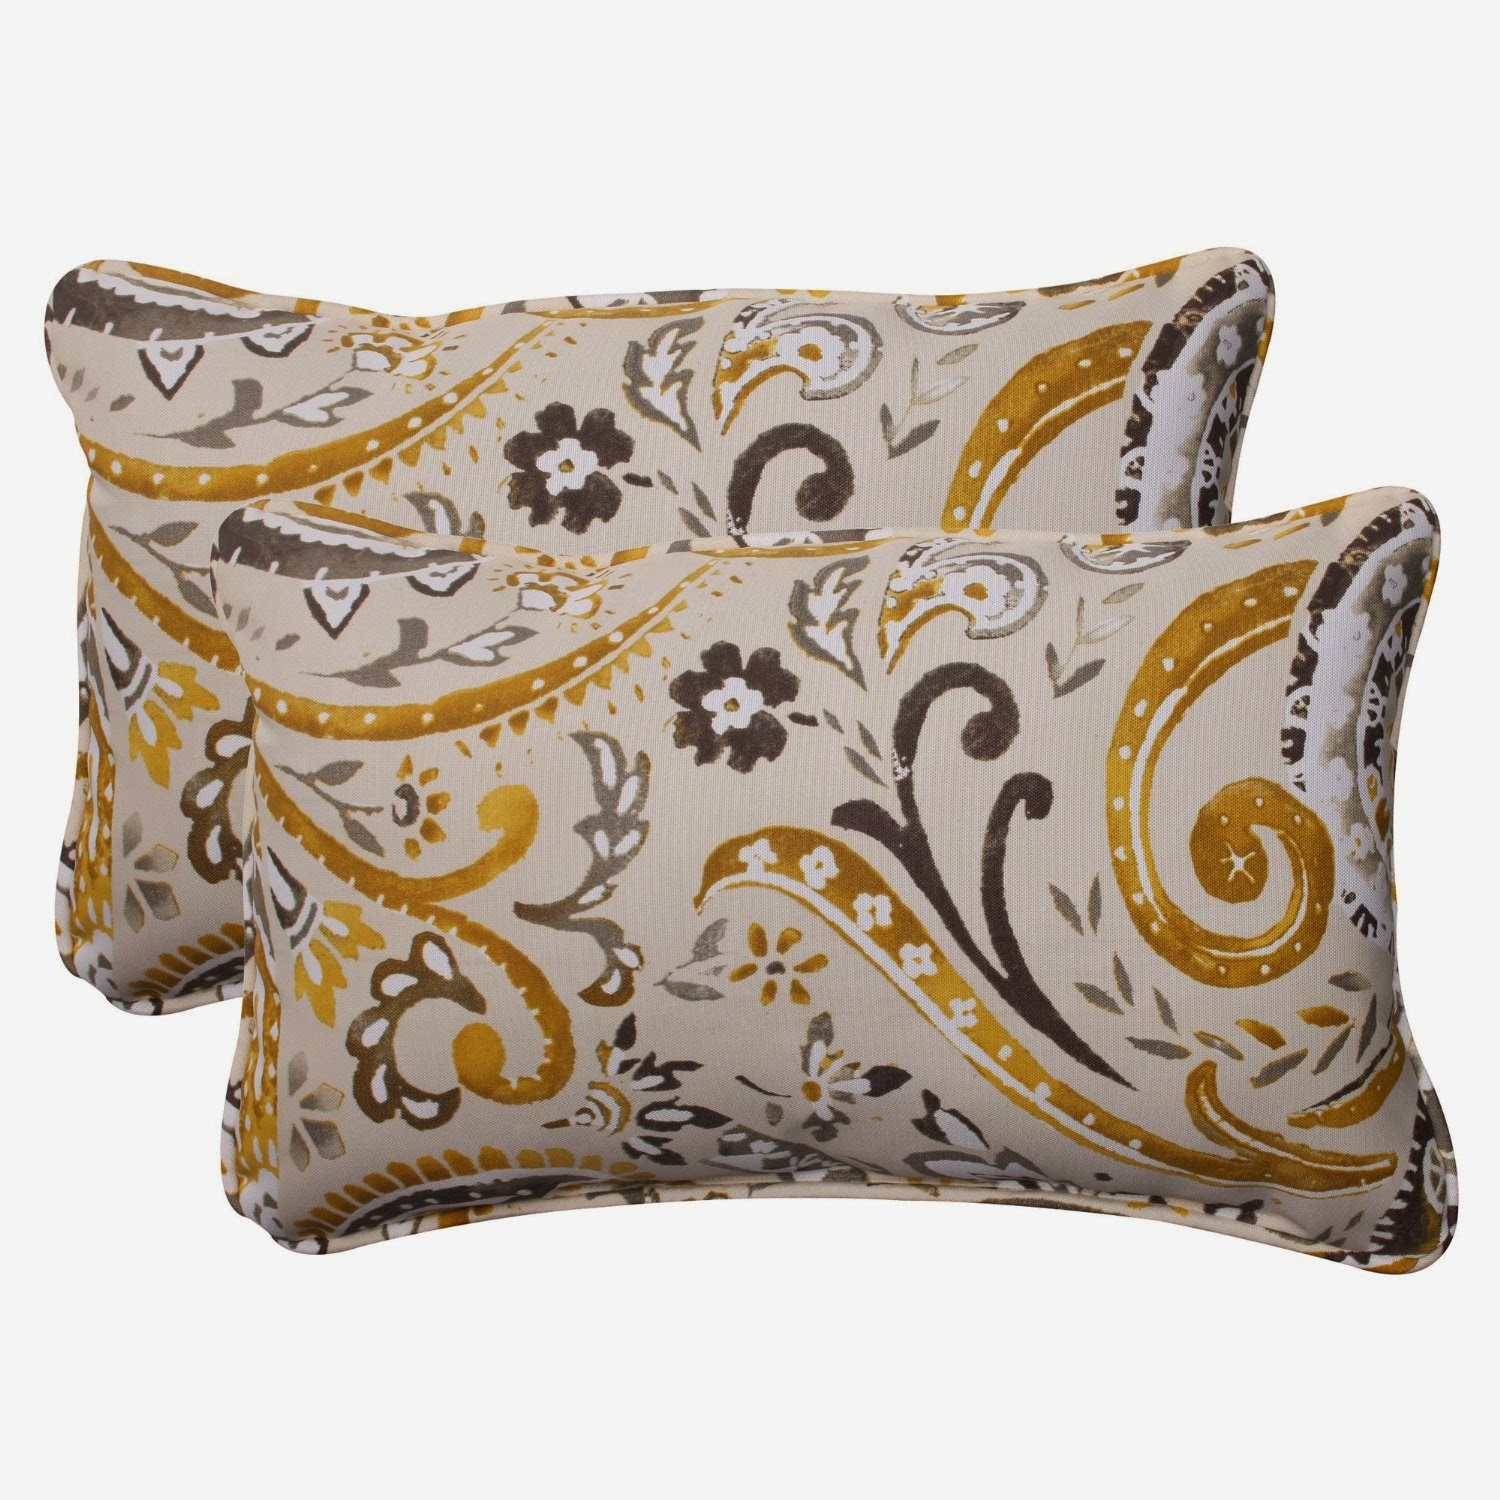 Throw Pillows Moroccan : Grey Bedding and Matching Curtains ? Ease Bedding with Style